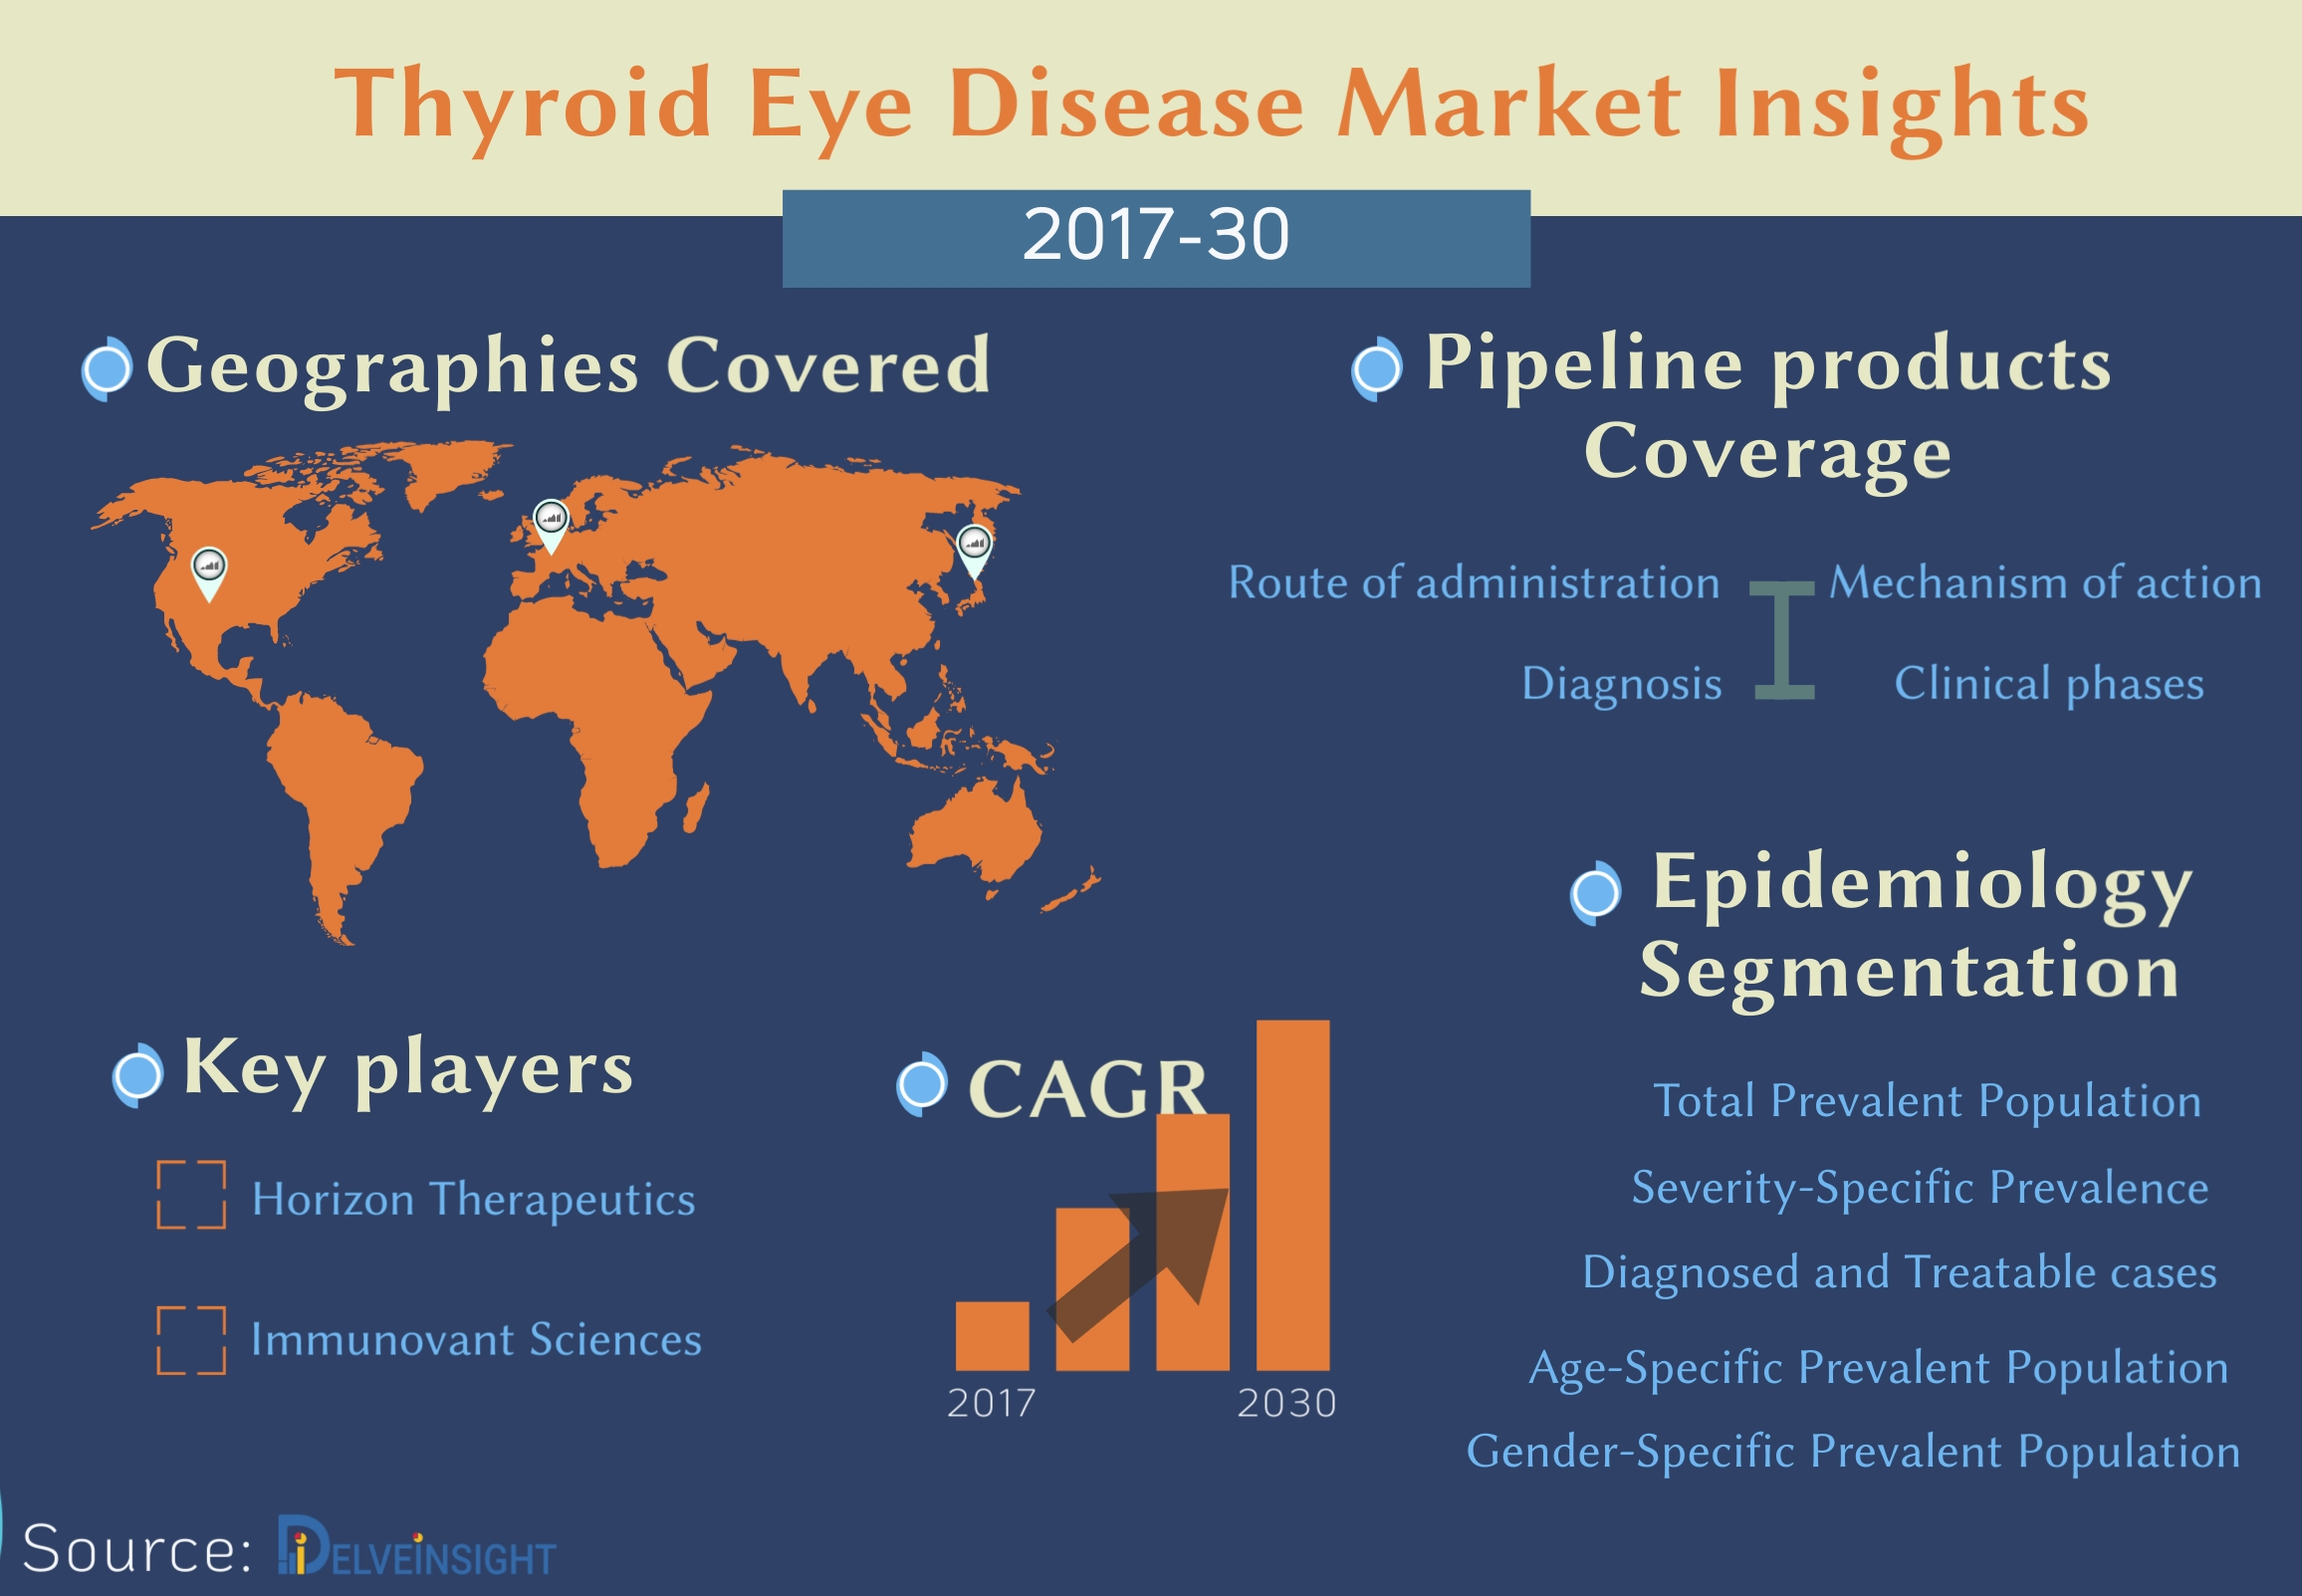 Thyroid Eye Disease Market: New therapies set to fuel the market for the study period 2017-30